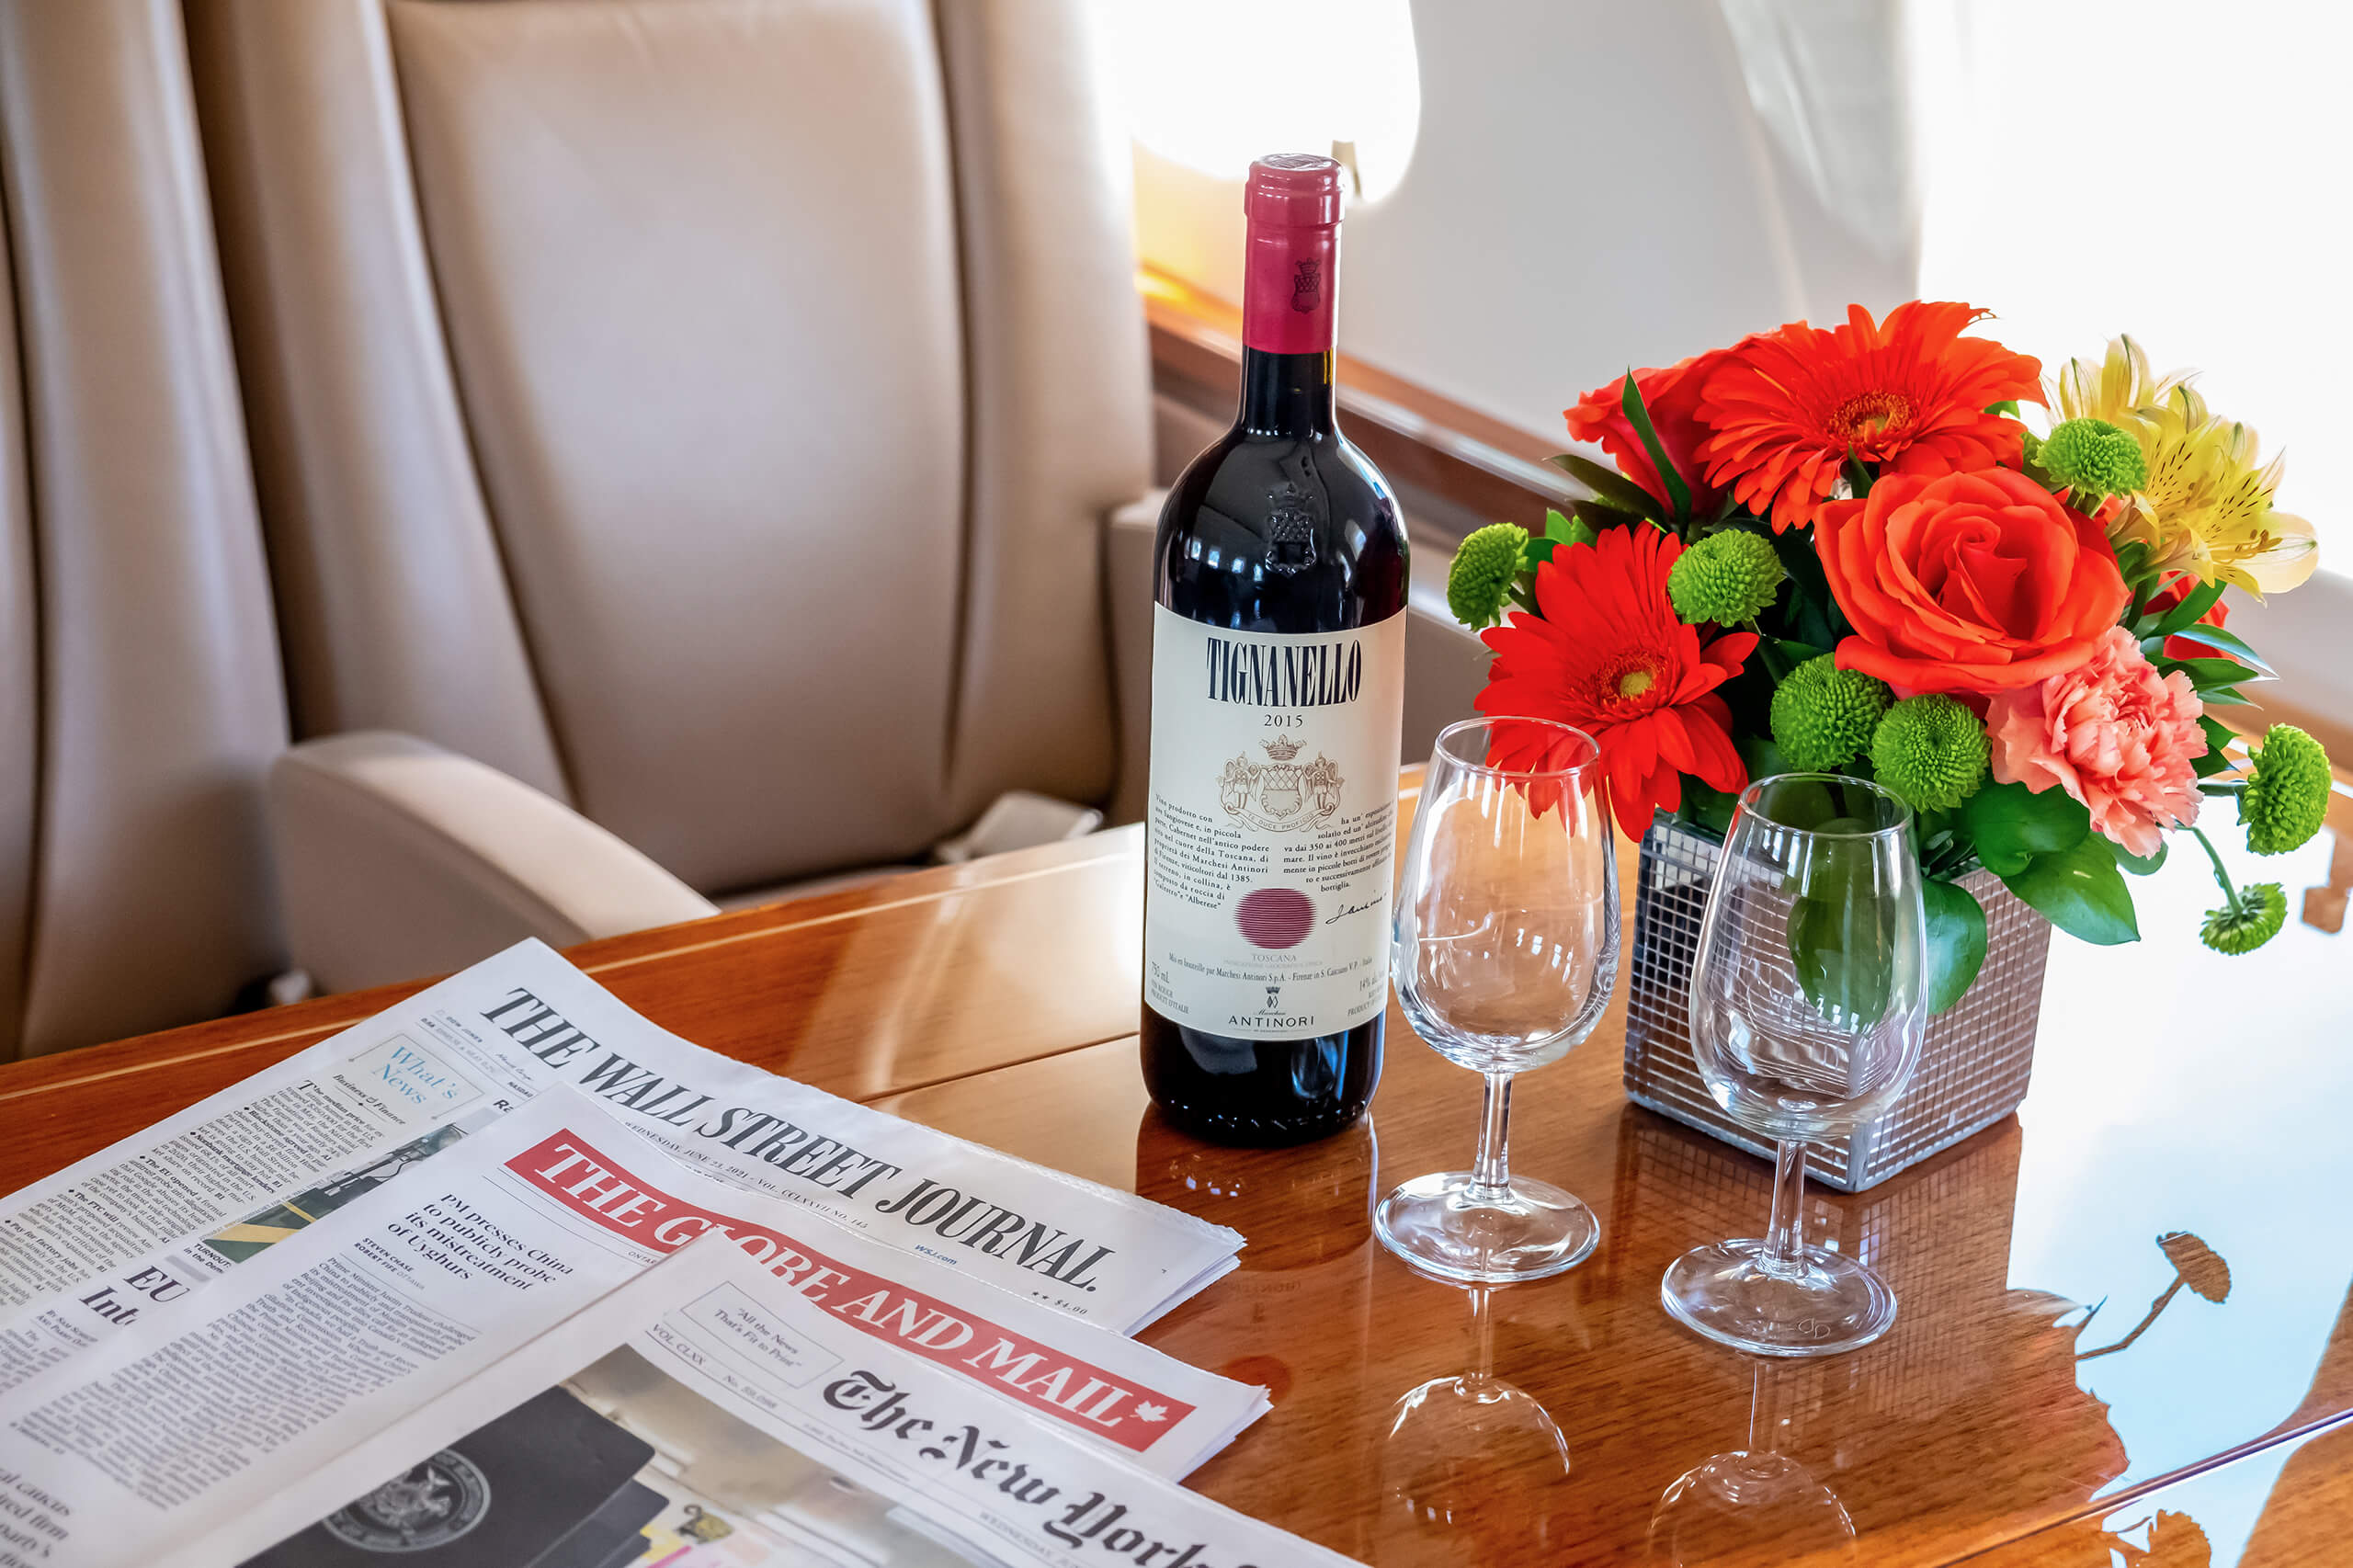 Red wine, wine glass, bouquet of flowers and newspaper on the table of a private jet.